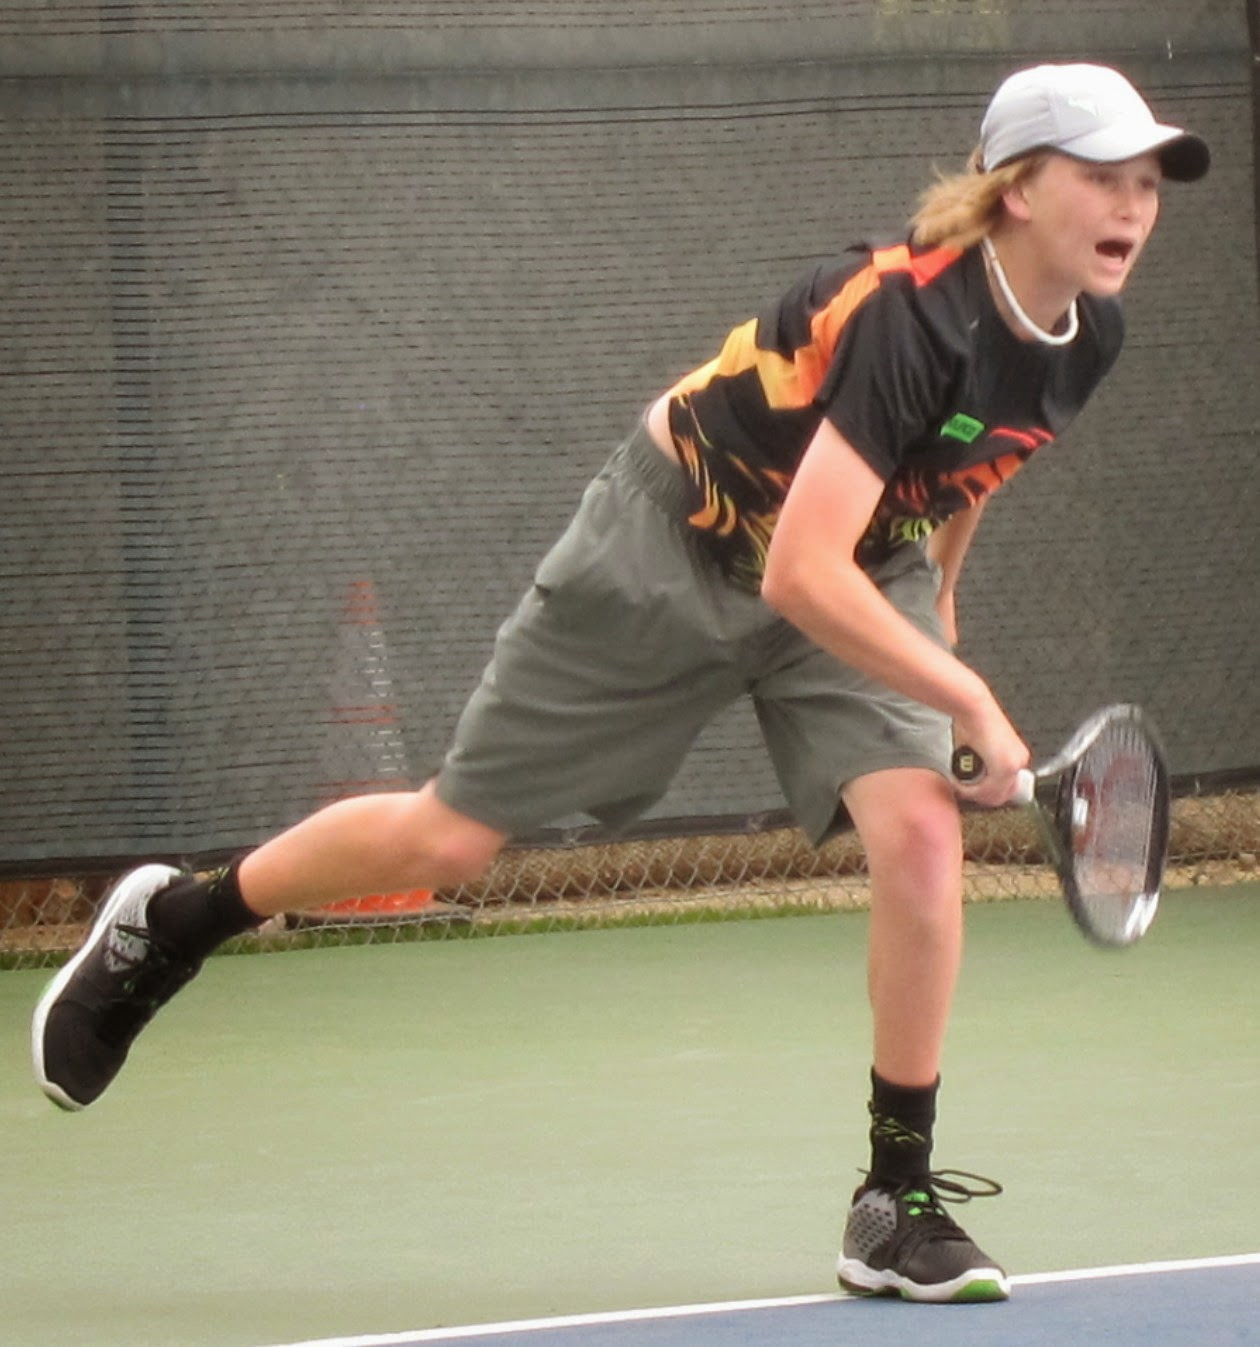 Brooksby, 14, falls in Futures qualies; college results